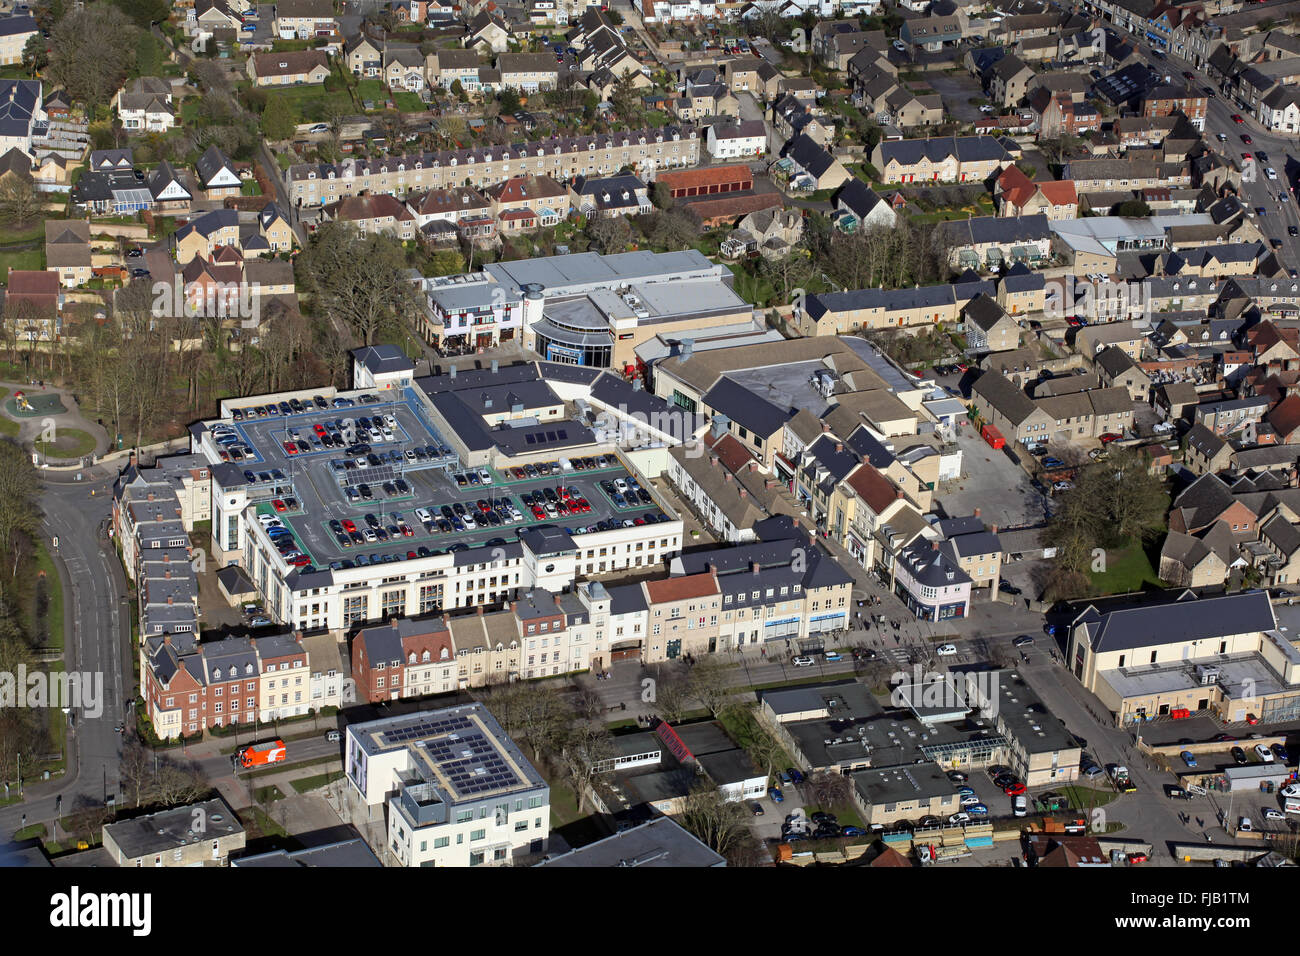 aerial view of Witney town centre in Oxfordshire, UK - Stock Image